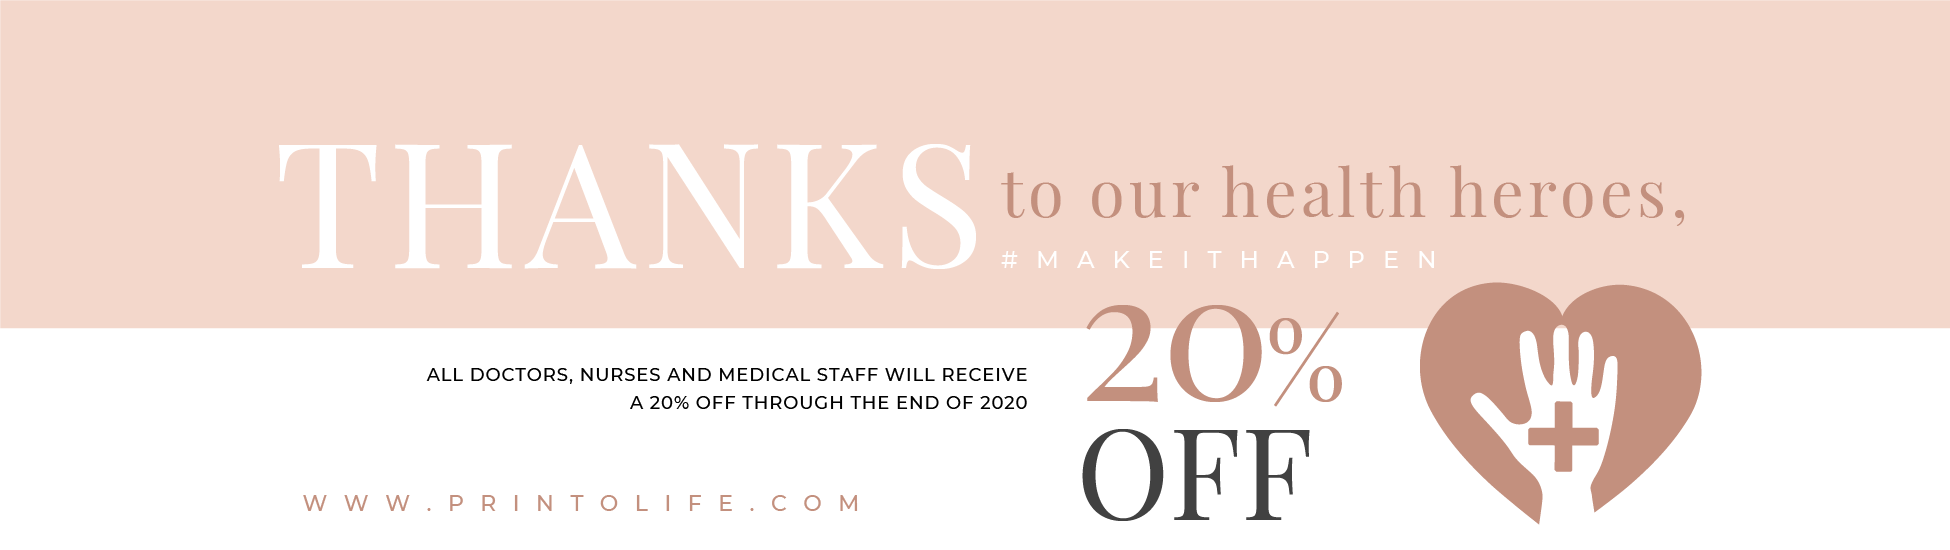 Thanks to our health heroes 20% OFF 1